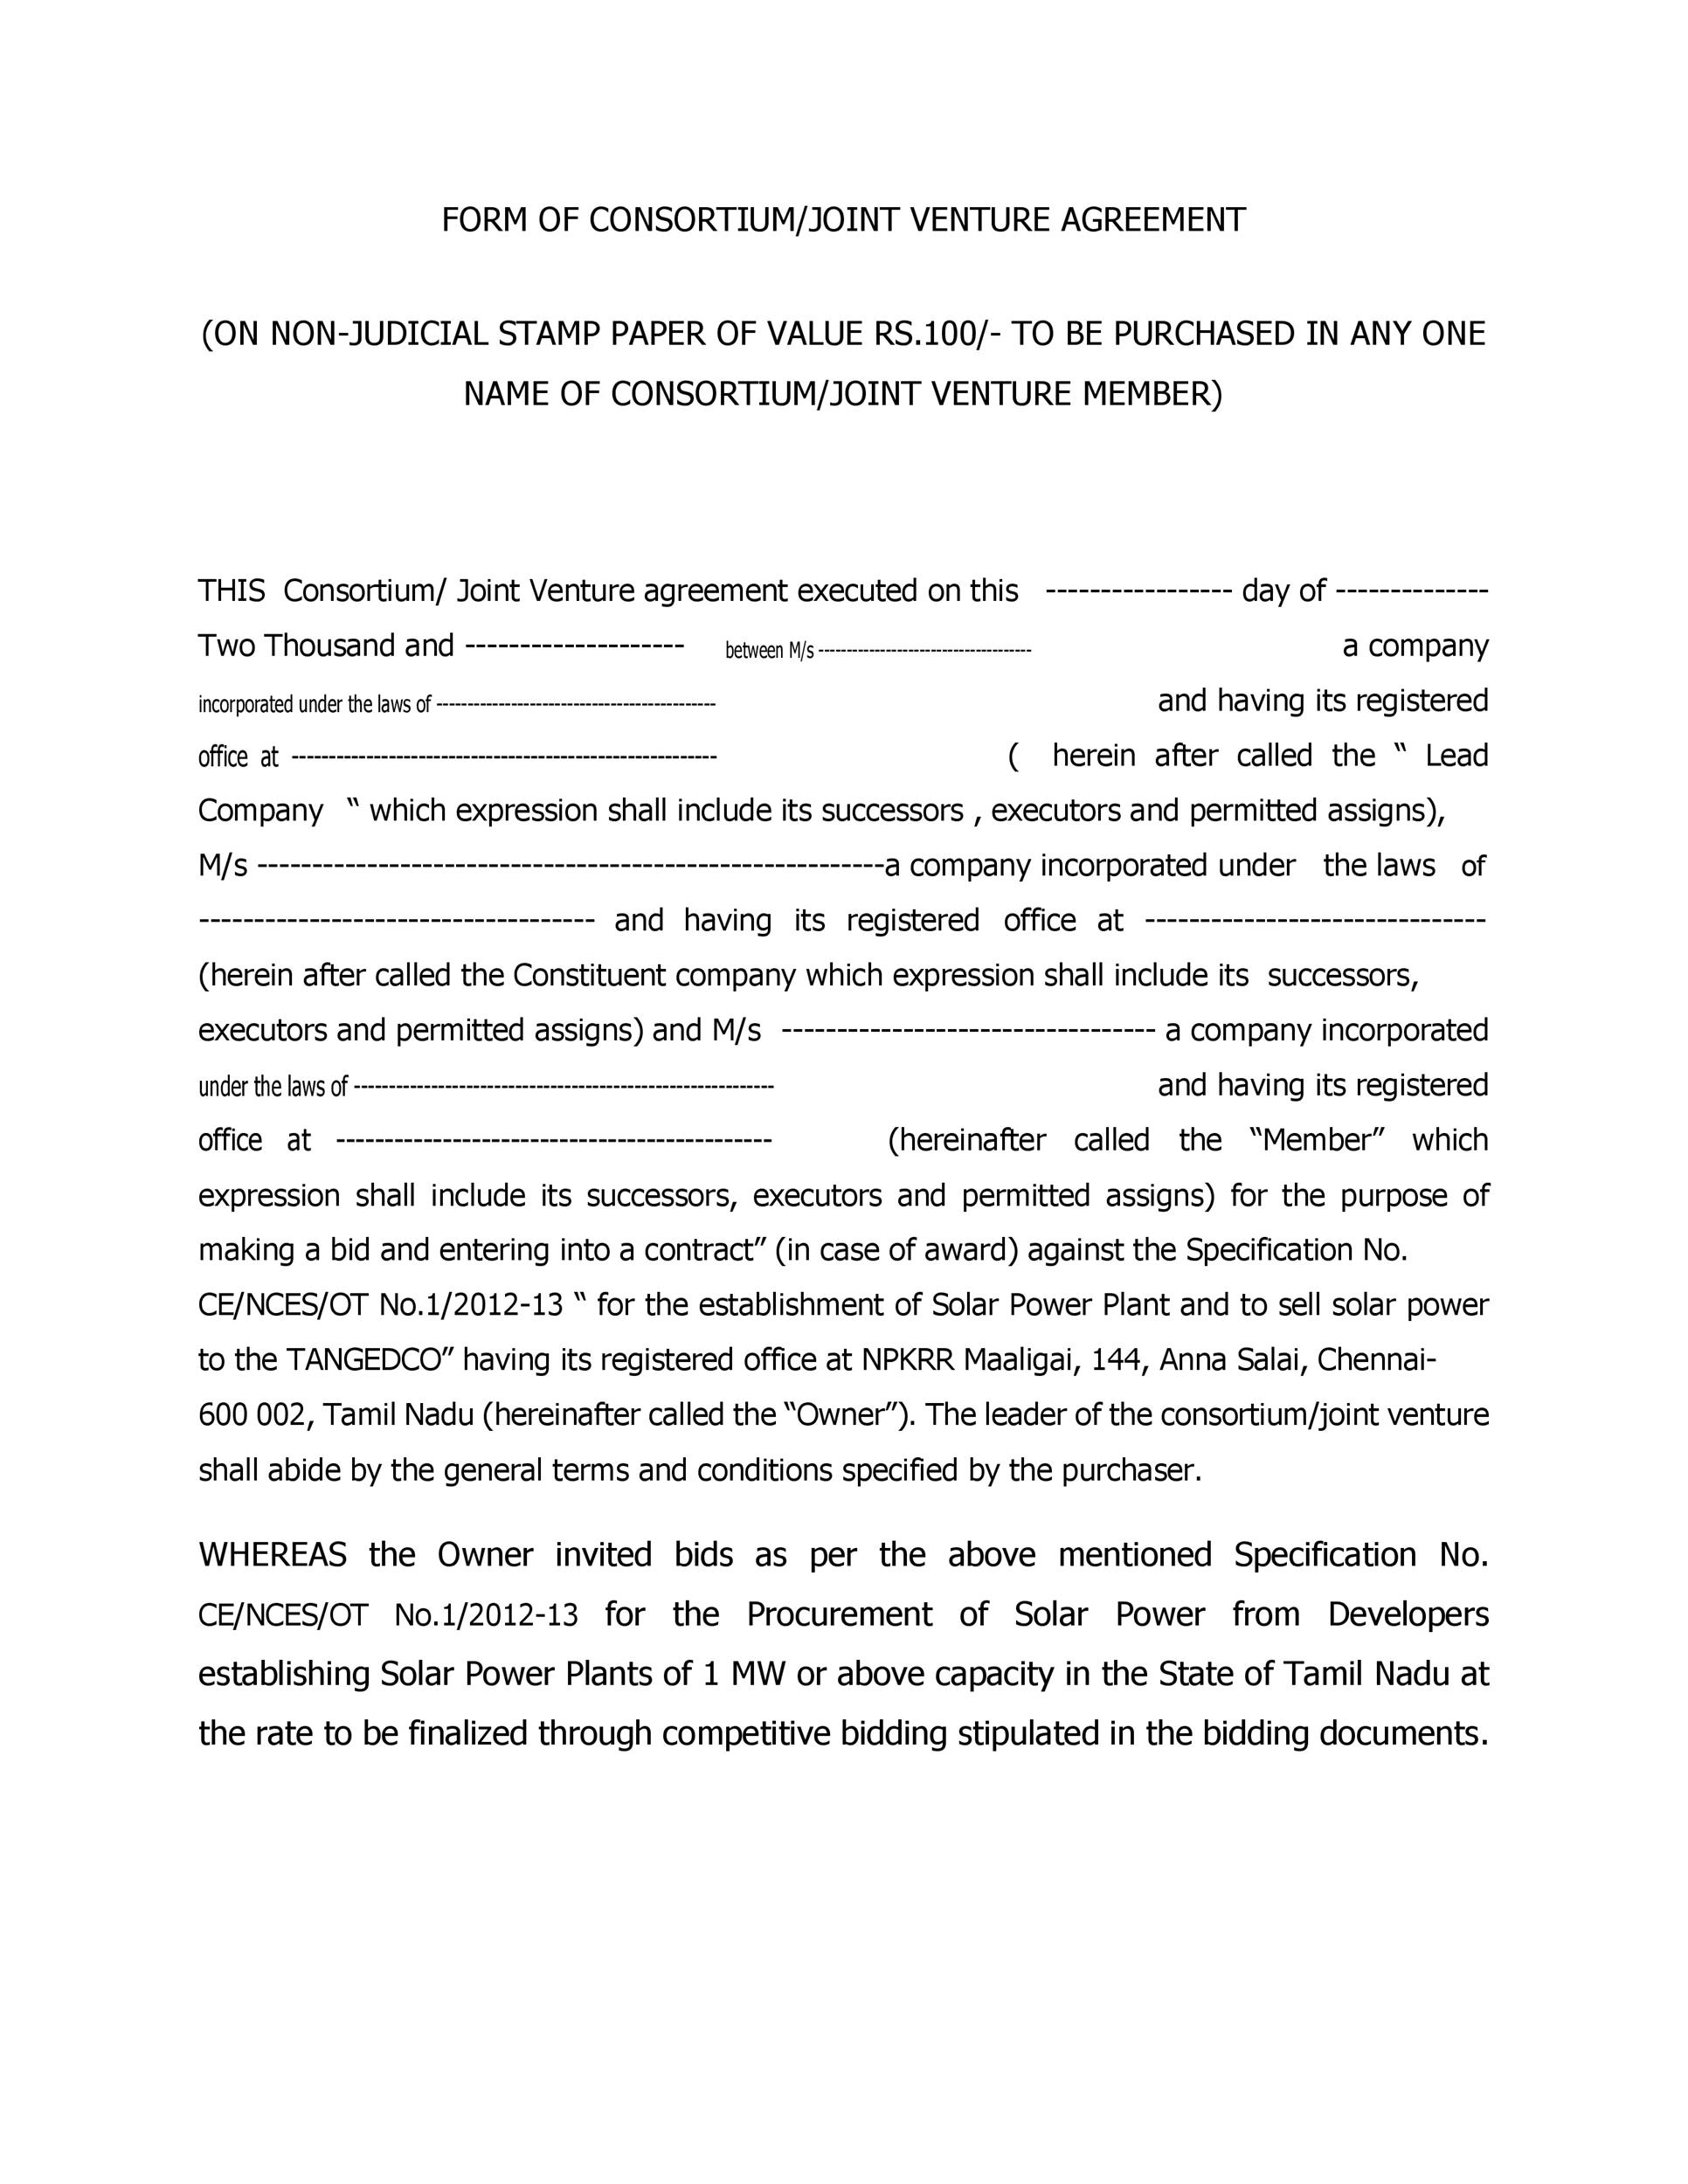 Agreement Form Doc Sample Business Contract Template Band - agreement form doc